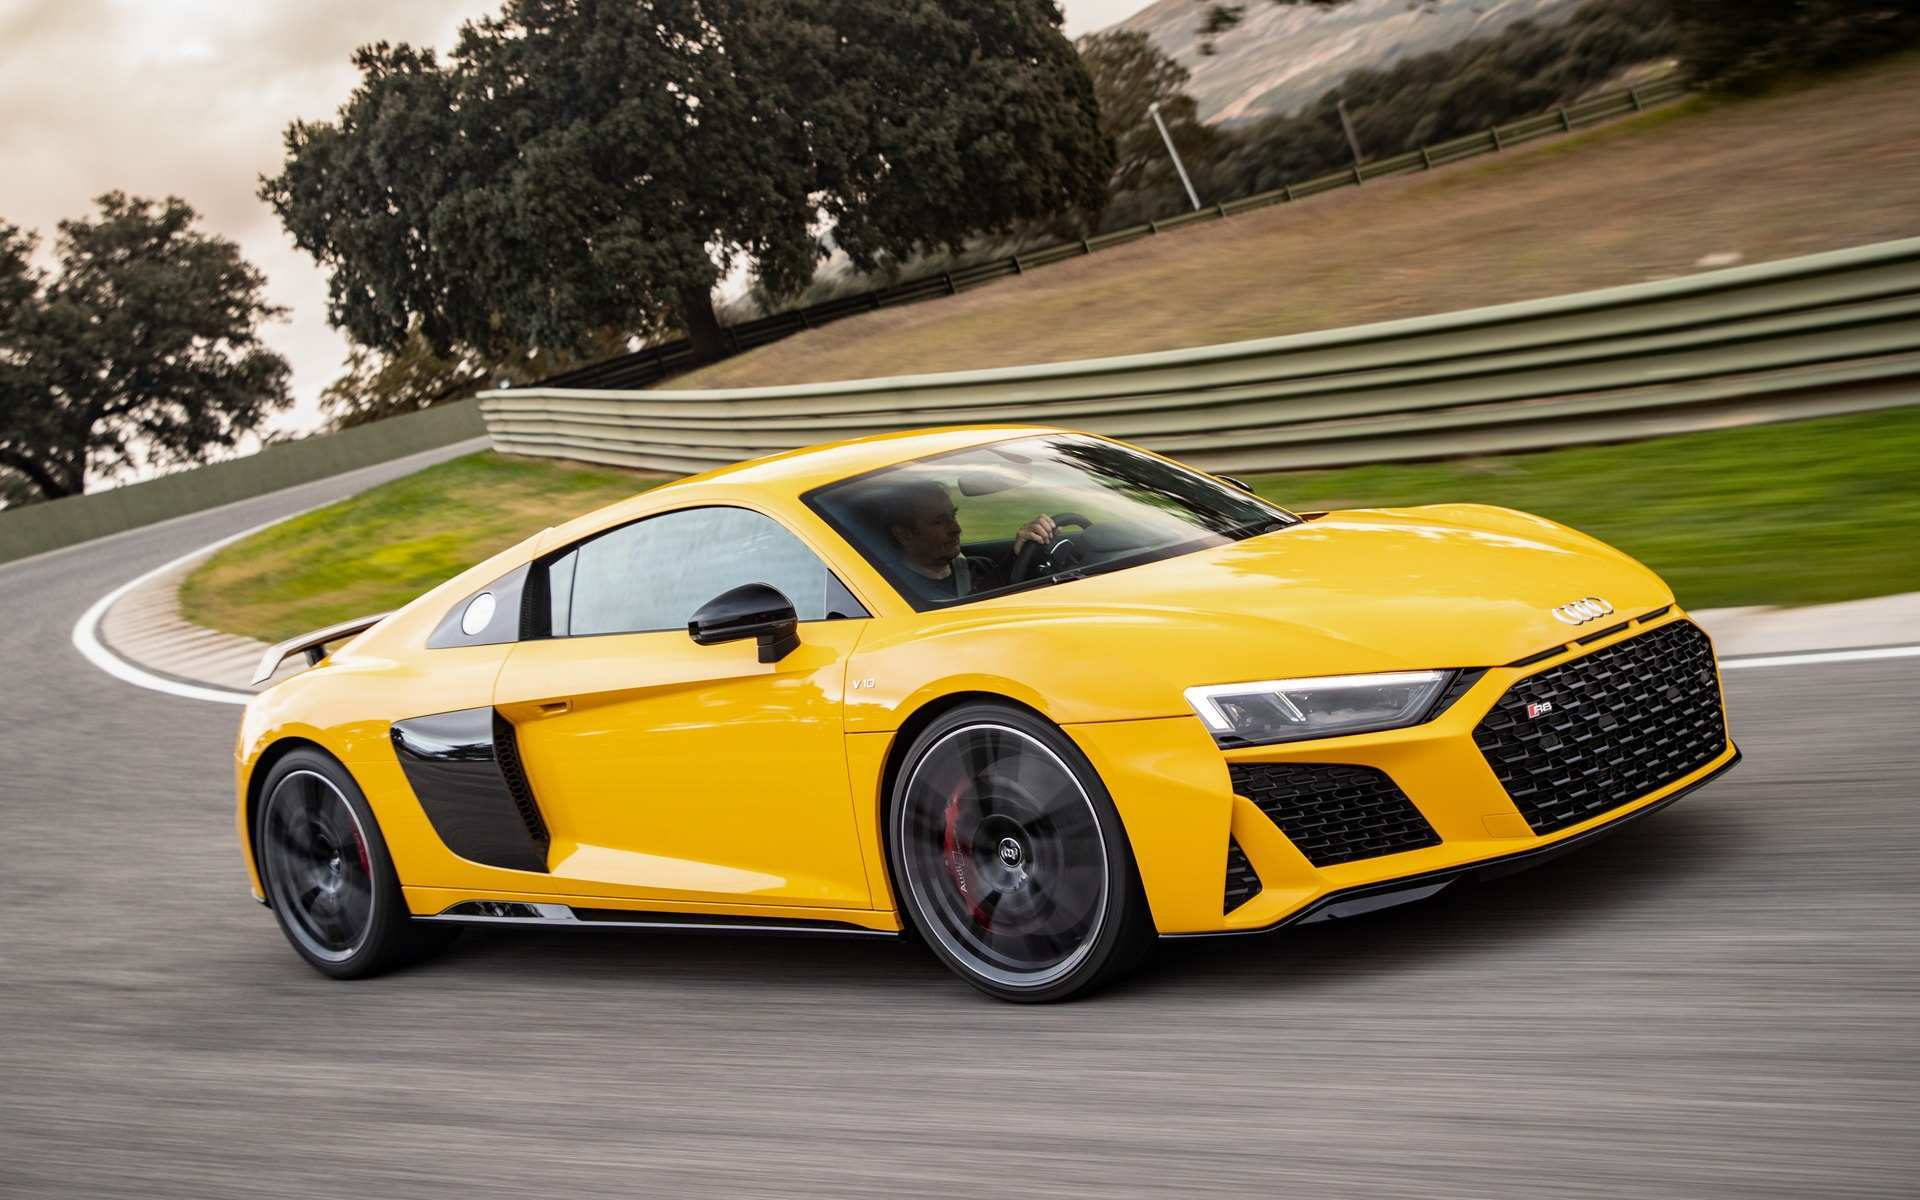 12 Gallery of Audi R8 2020 Price for Audi R8 2020